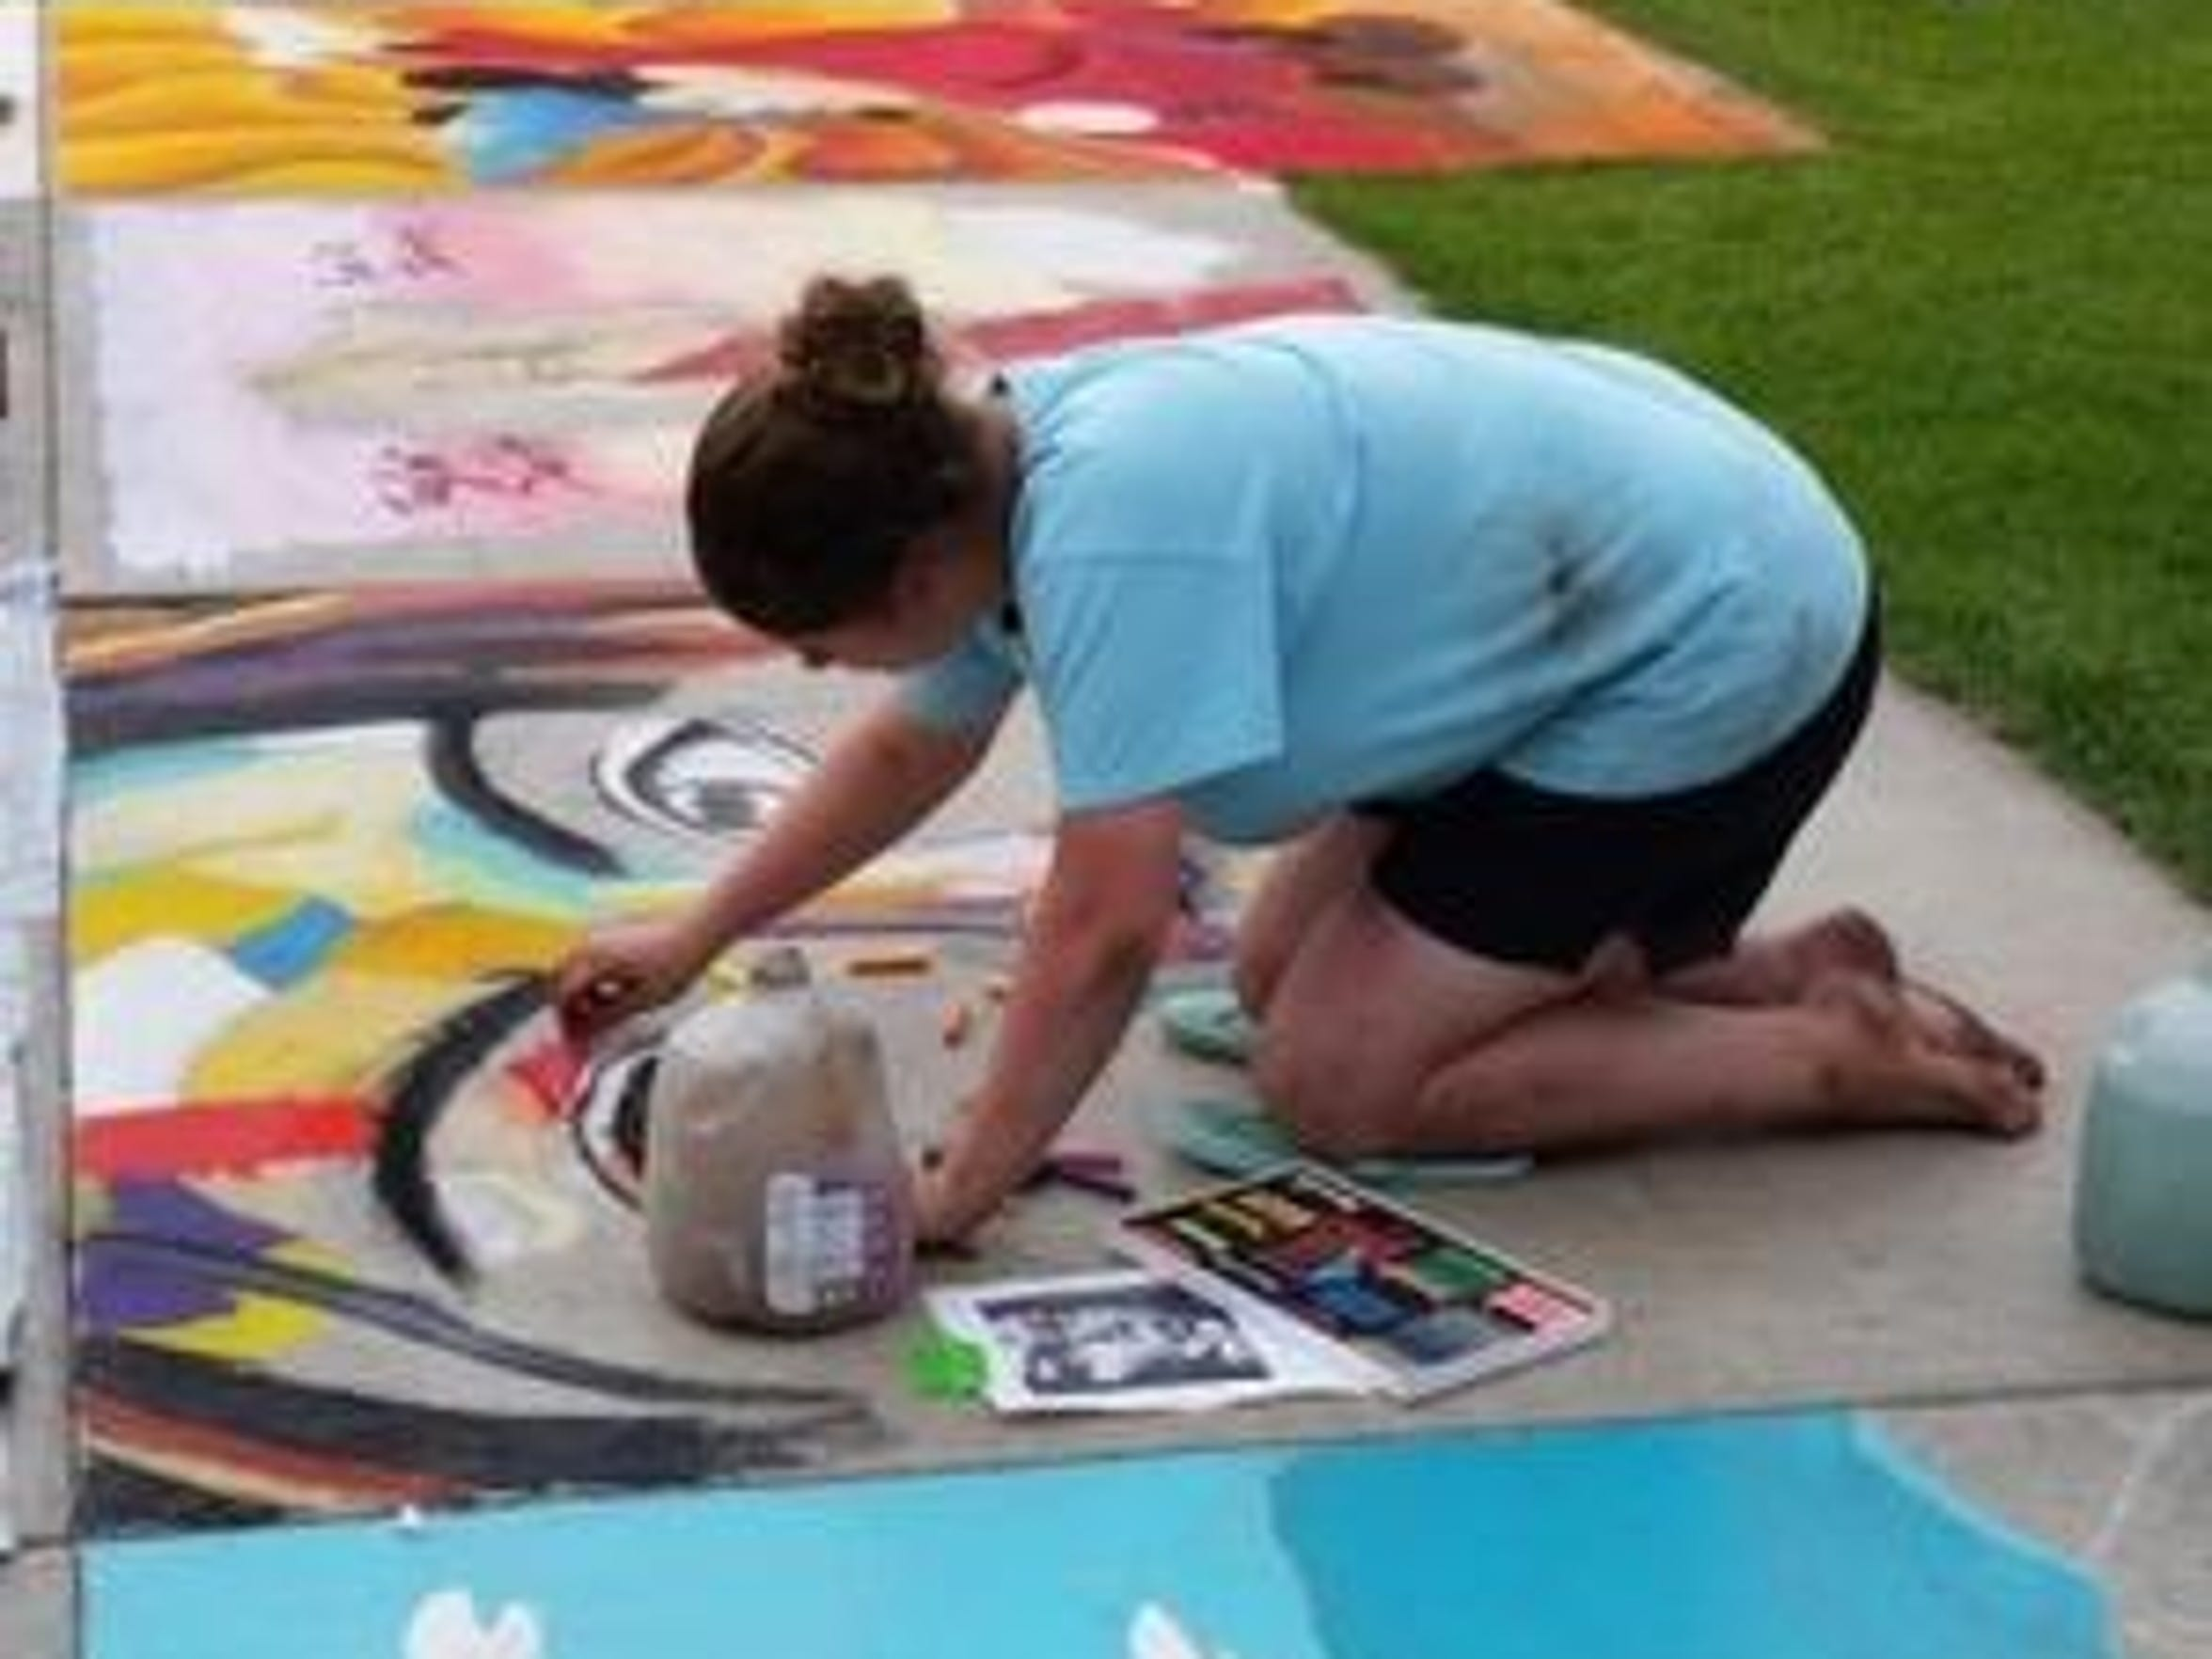 Photo courtesy of Jamie Bootz. Paige Bootz works on a portrait at Chalkfest 2015 in downtown Wausau.